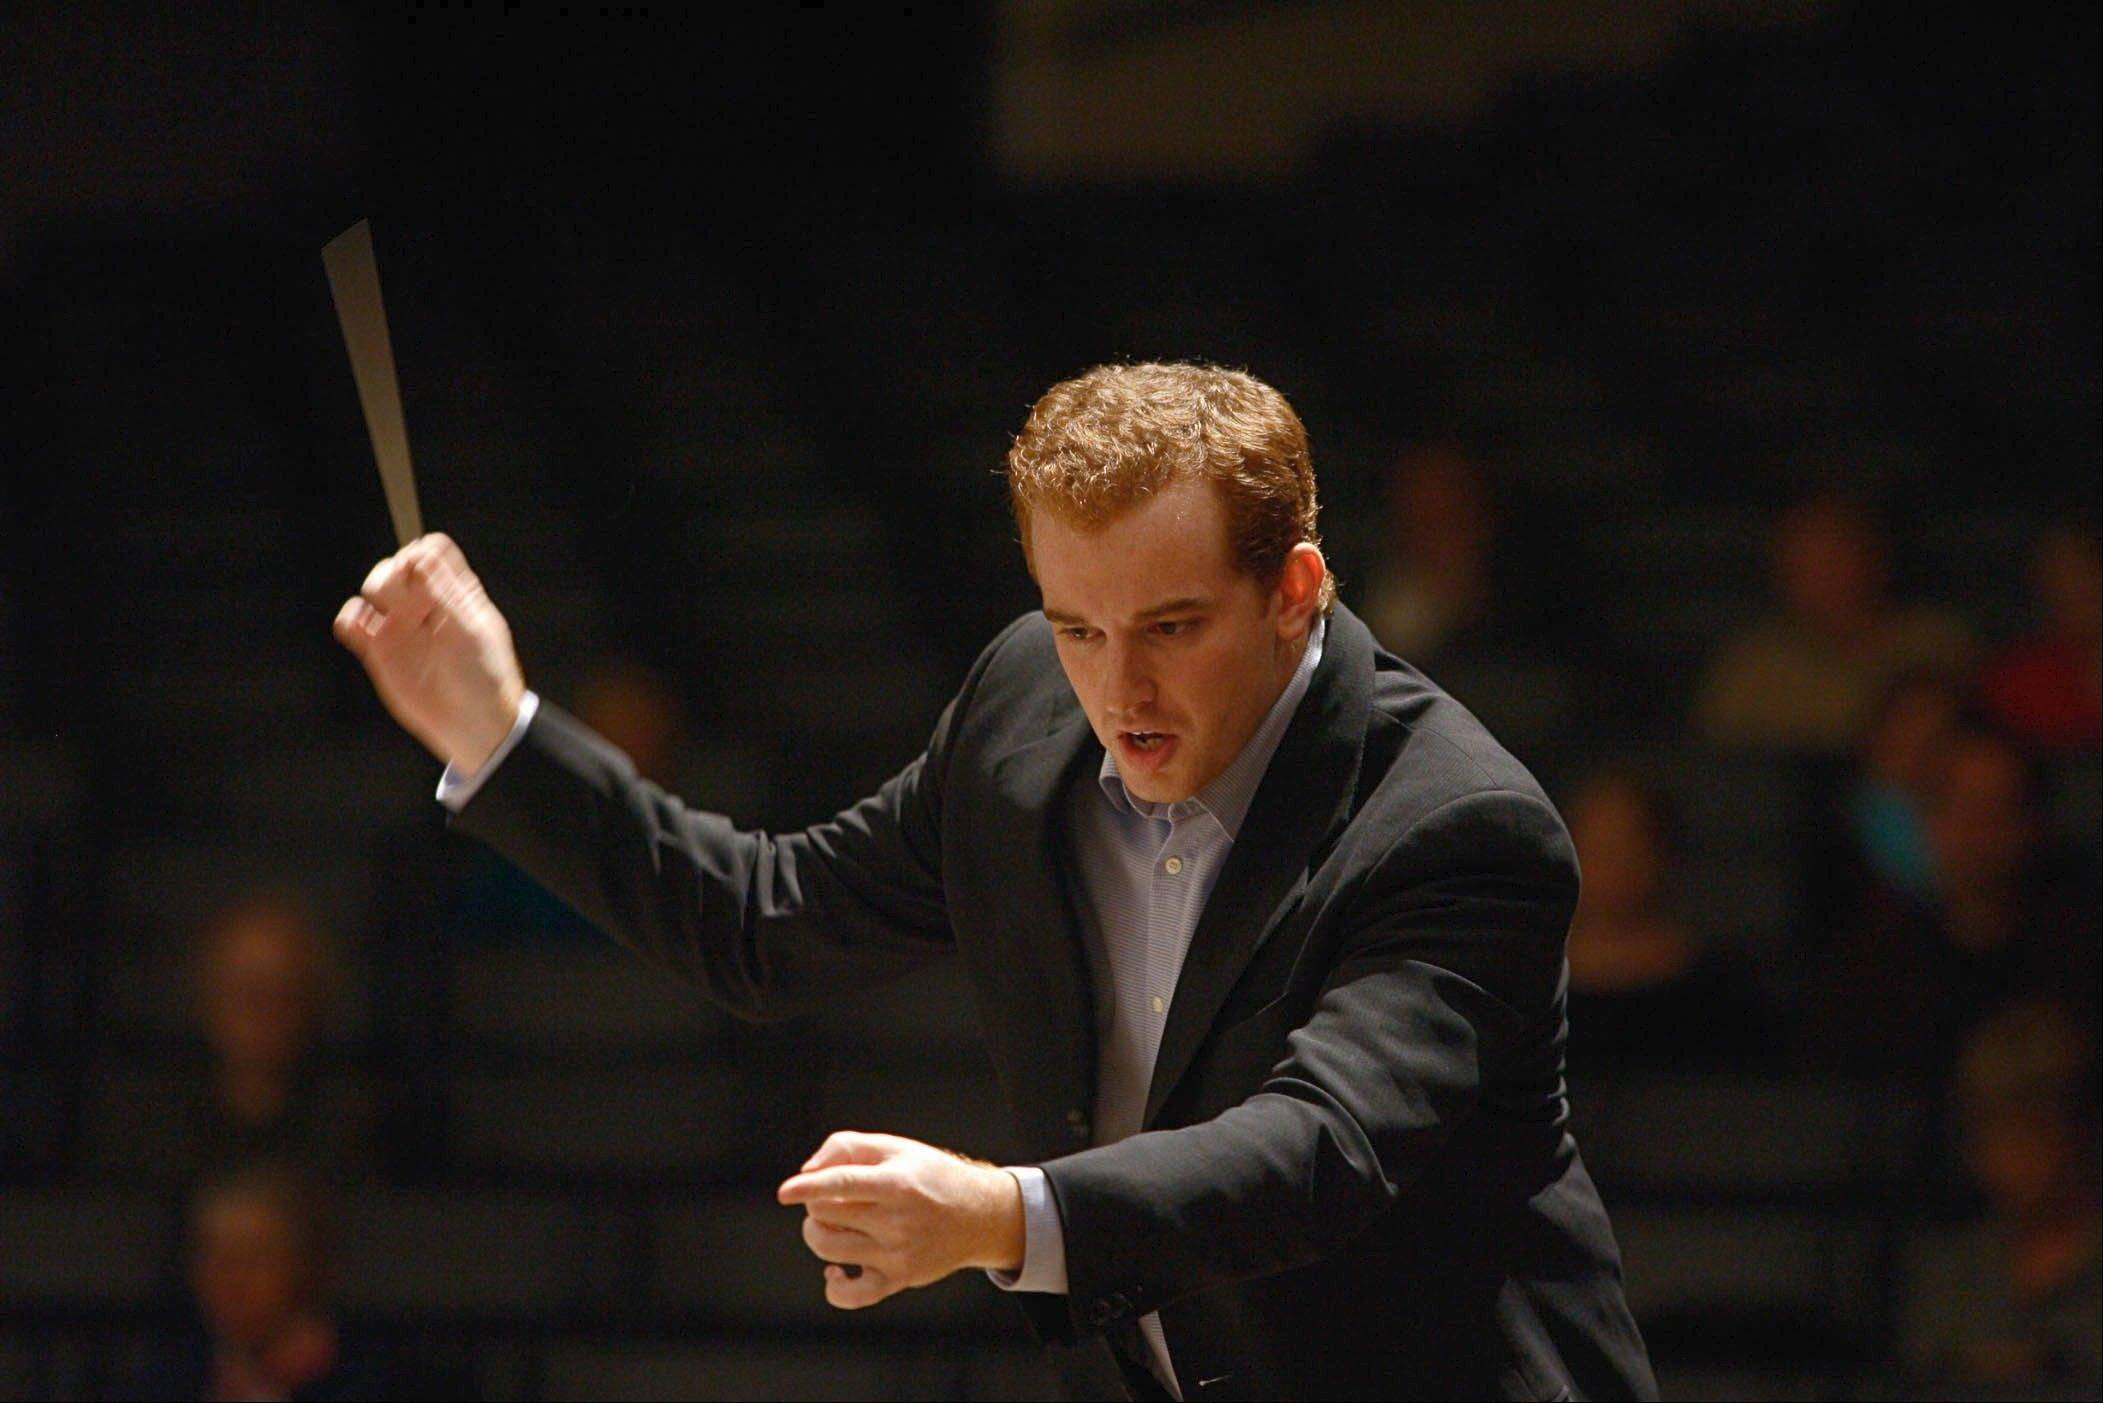 Steve Jarvi will conduct the Elgin Symphony Orchestra on Saturday and Sunday, Nov. 3-4, at the Hemmens Cultural Center in Elgin.